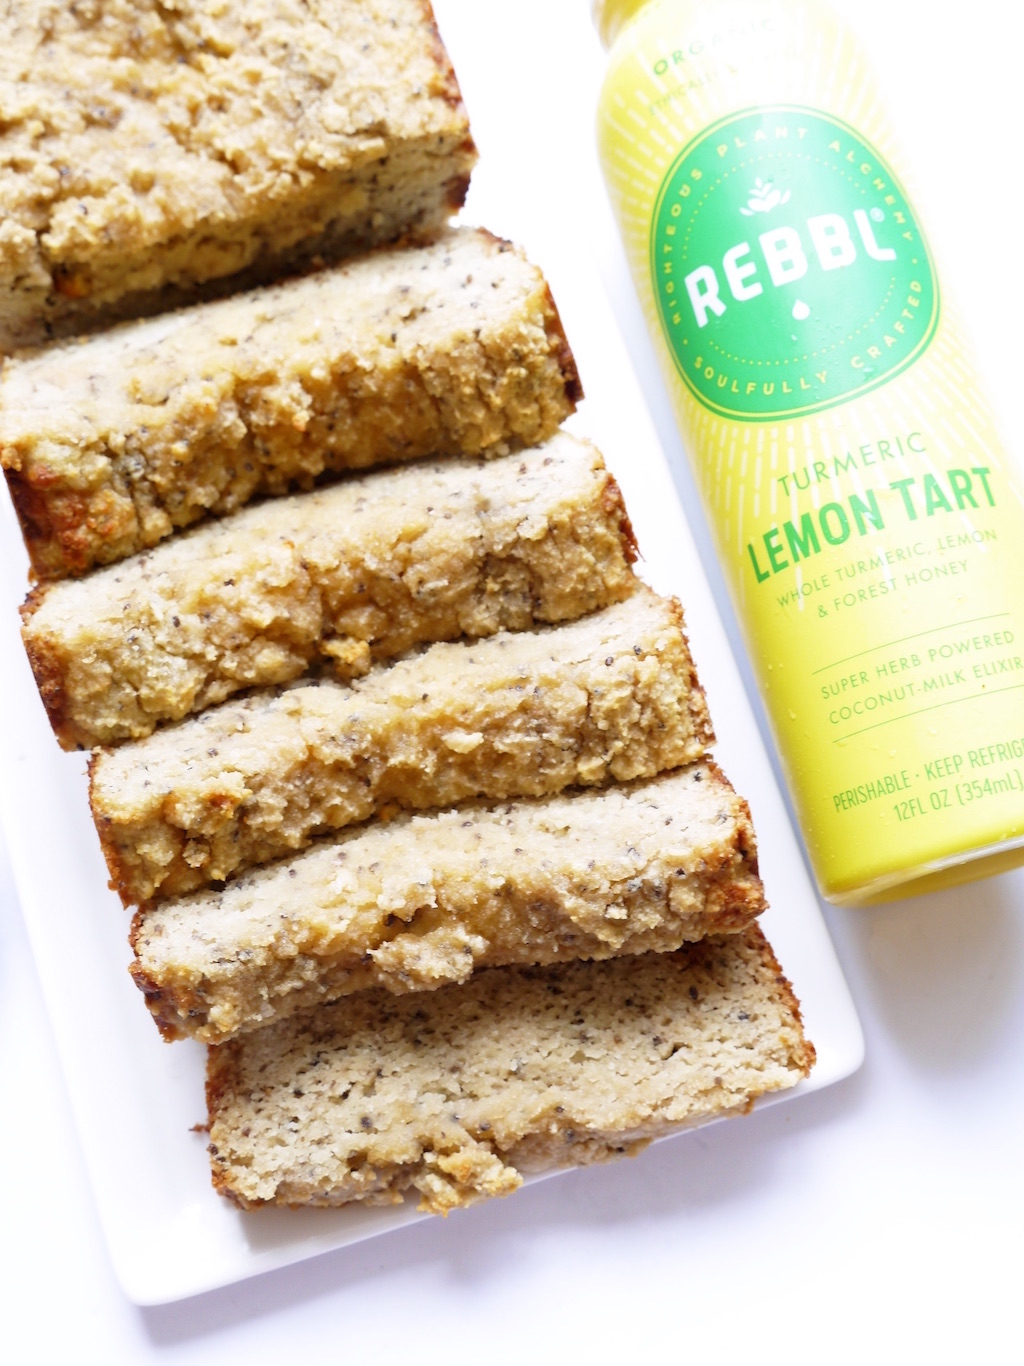 Lemon Turmeric Chia Loaf